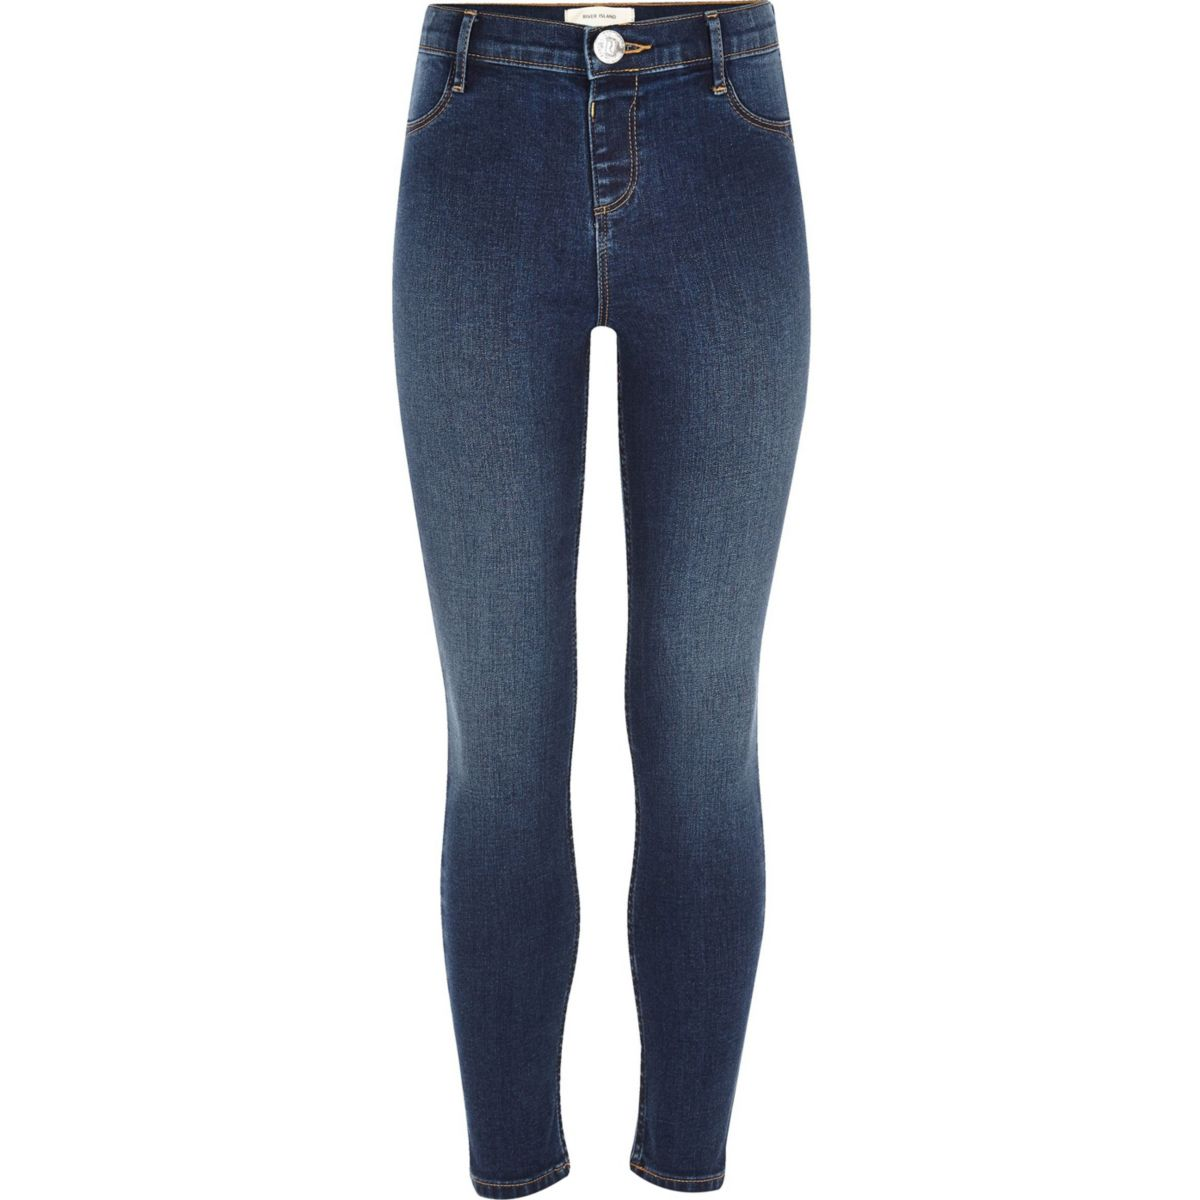 Molly – Jeans-Jeggings in dunkelblauer Waschung